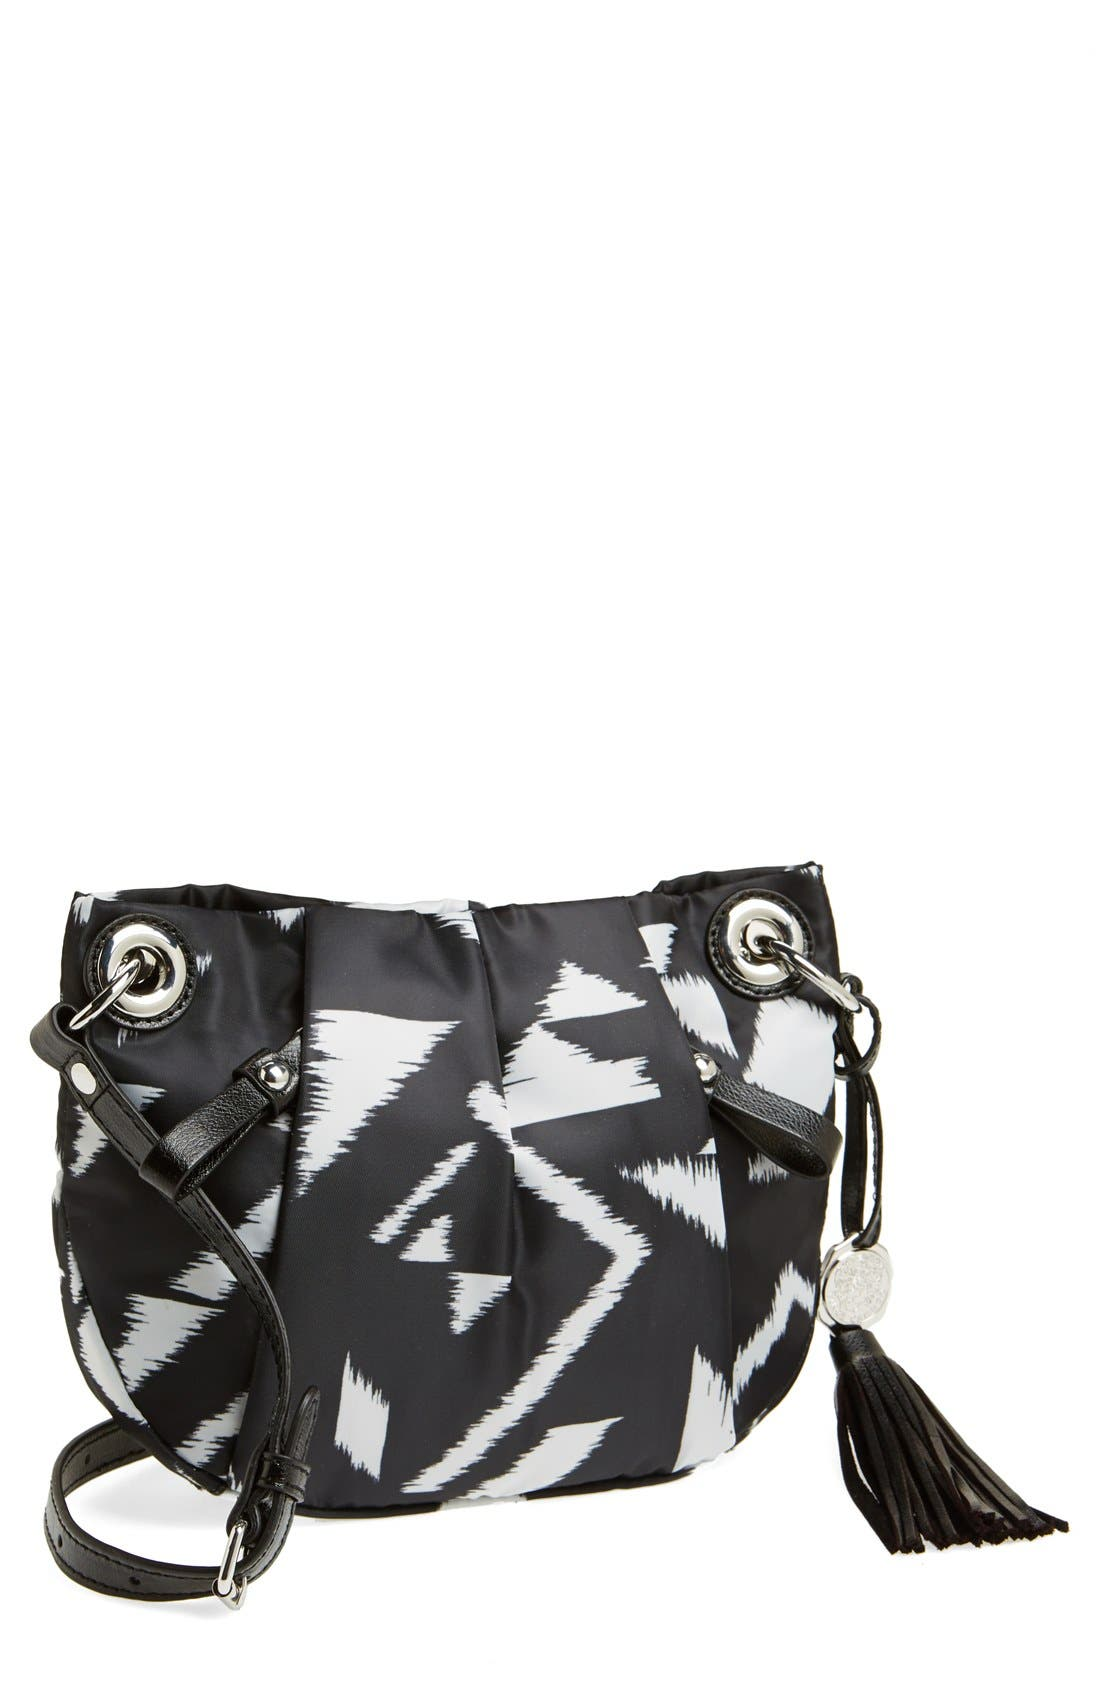 Main Image - Vince Camuto 'Cris' Nylon Crossbody Bag